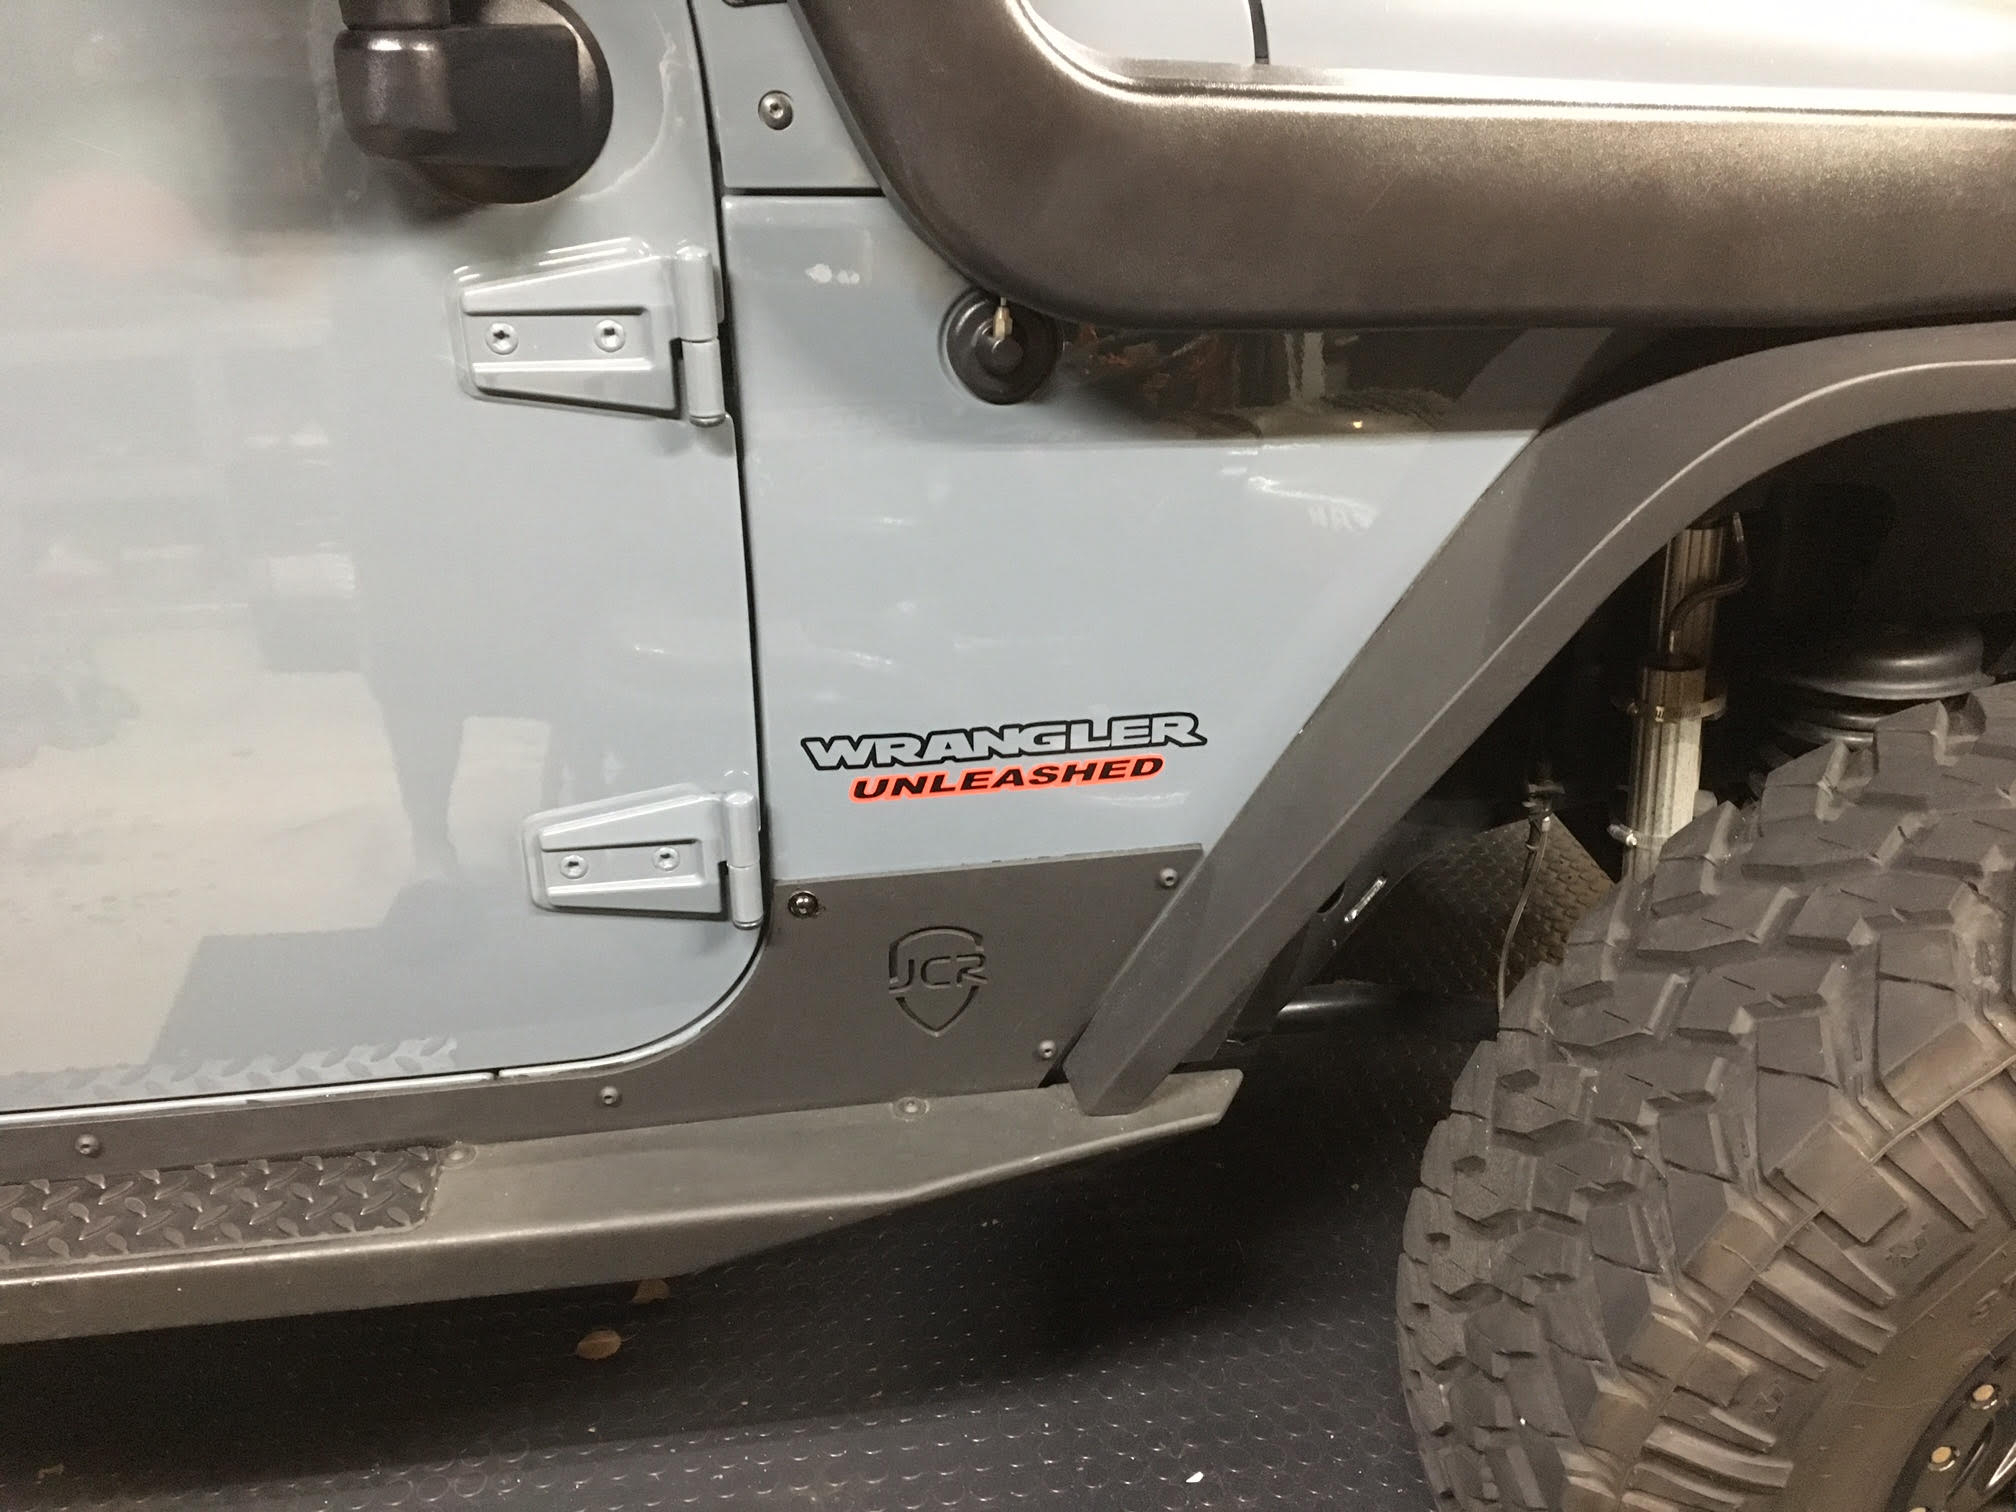 Jeep Wrangler Unleashed Fender Decals Yj Jk Cj Tj Jl Outline